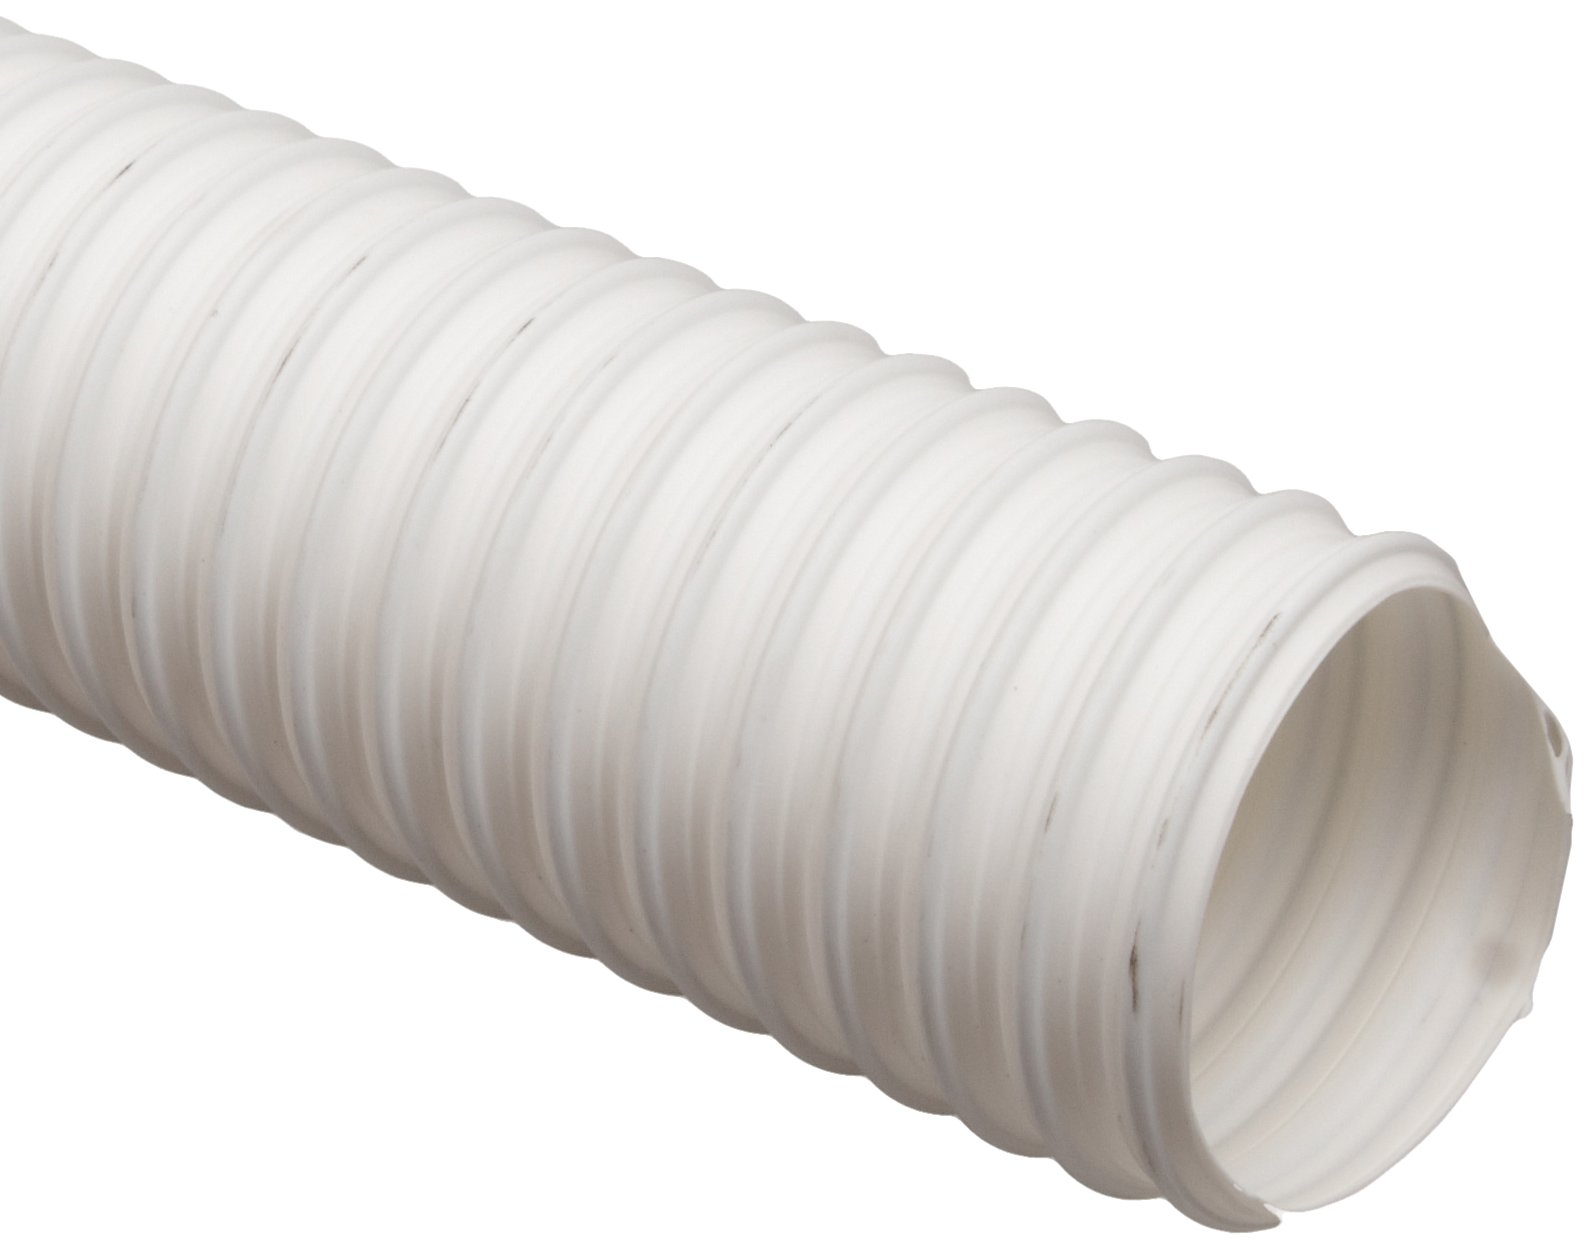 Flexadux T-7 Thermoplastic Rubber Duct Hose, White, 6'' ID, 0.030'' Wall, 25' Length